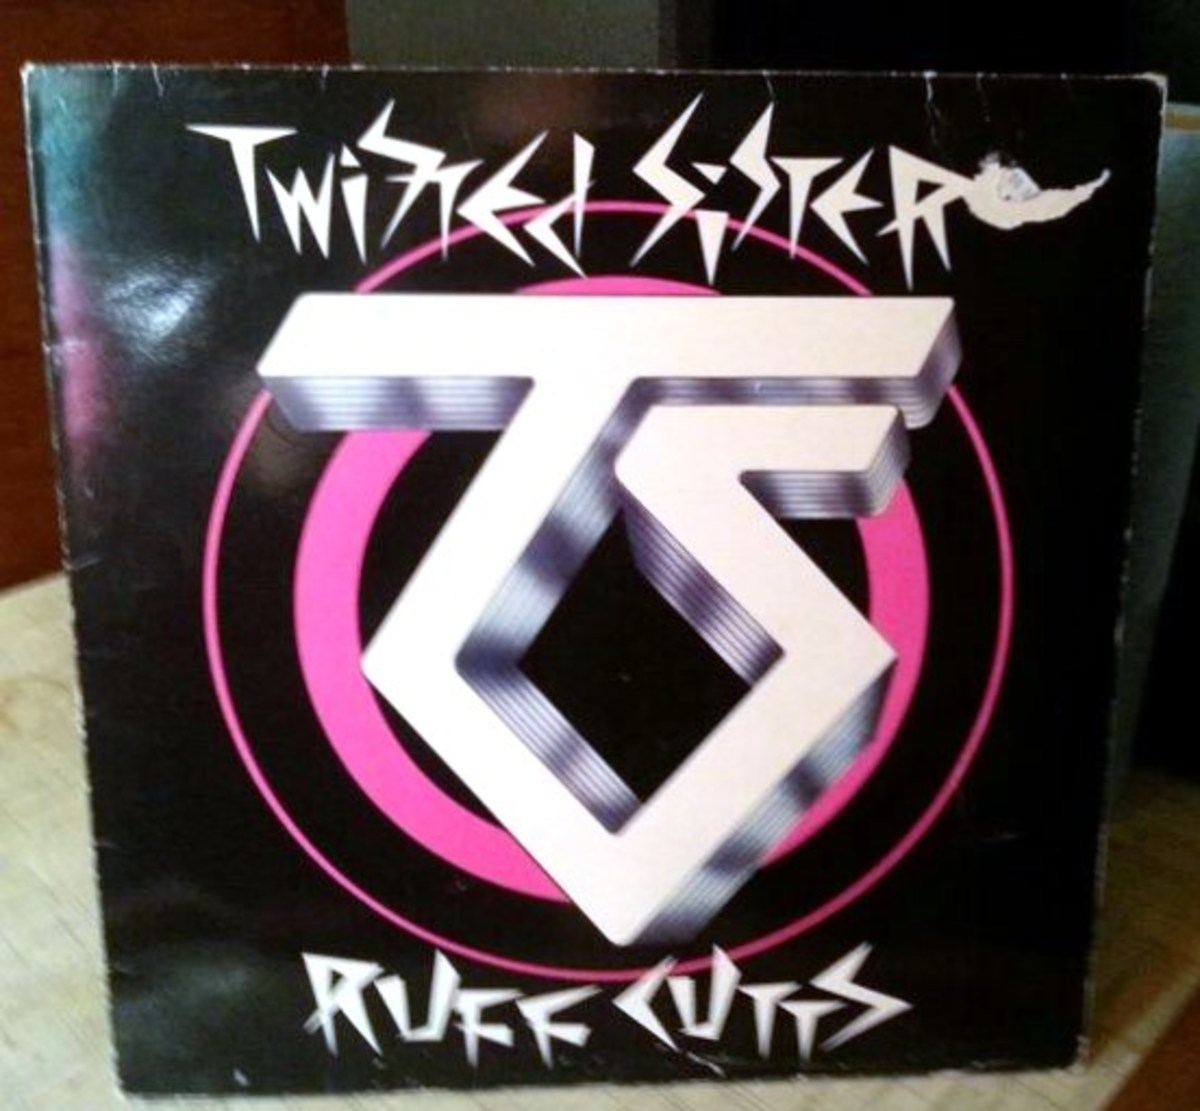 RUFF CUTTS EP (1982)